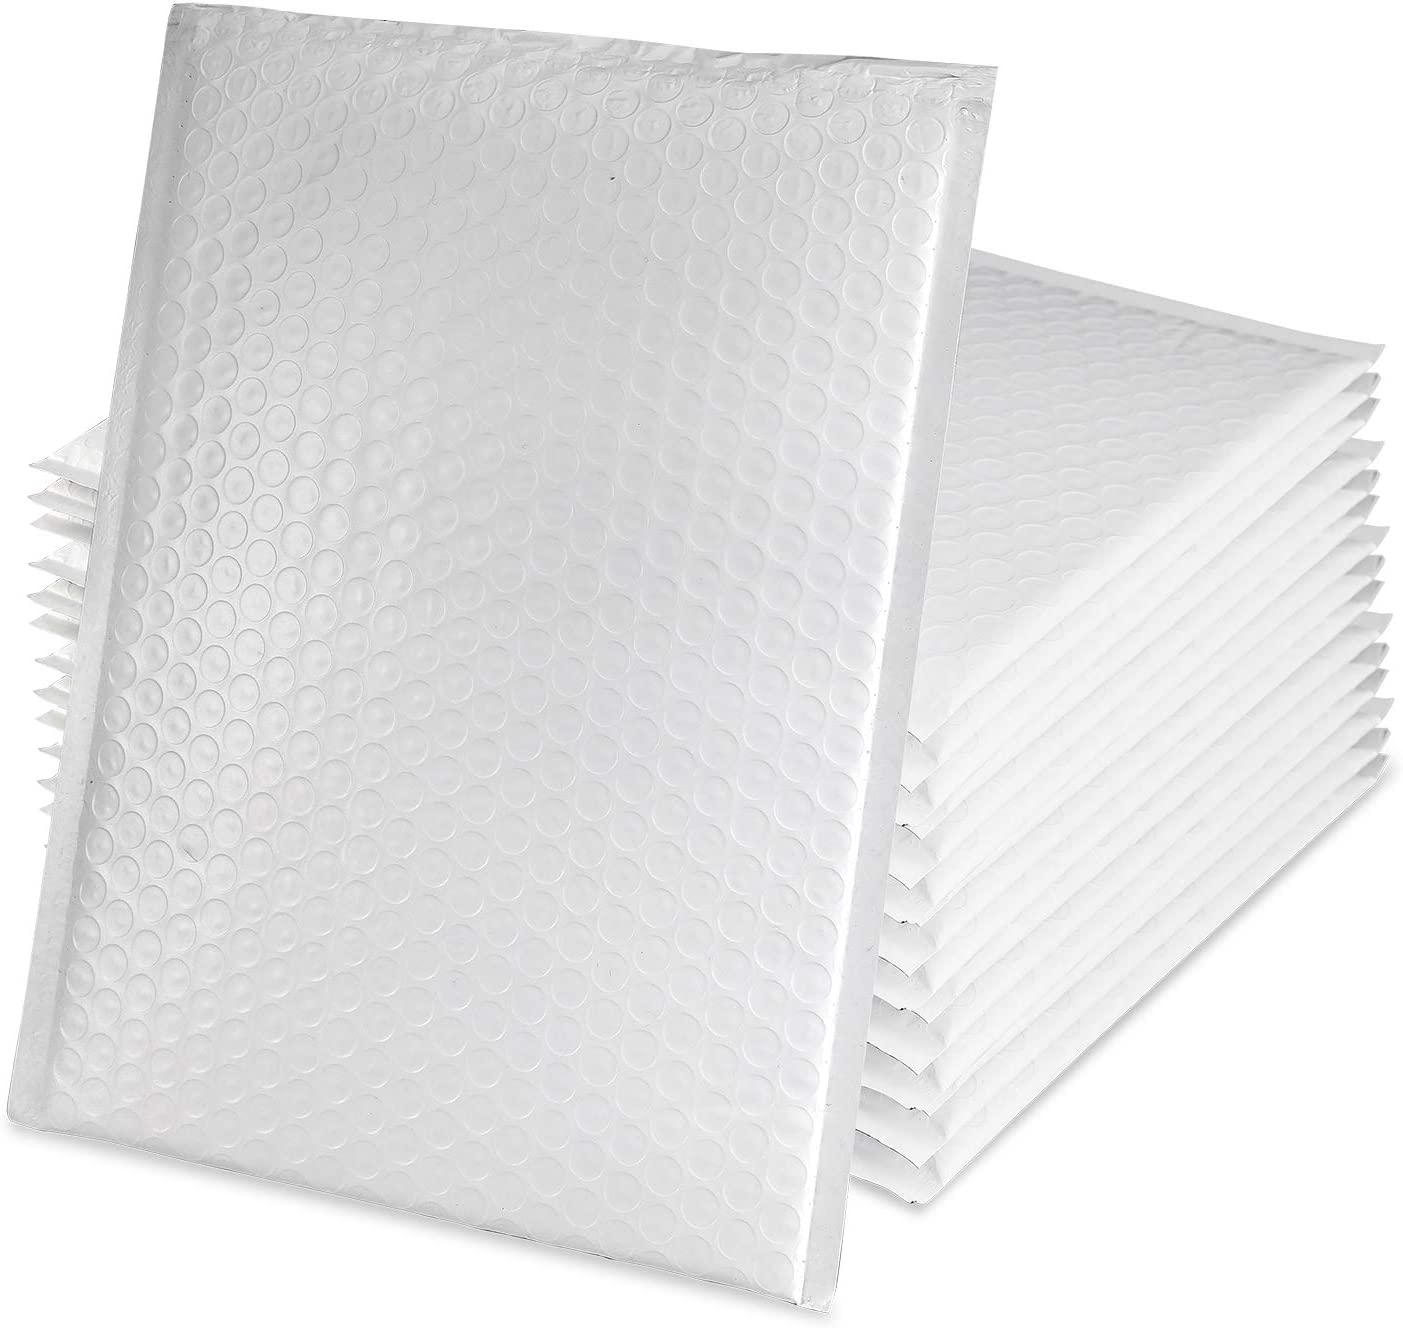 100pcs Poly Popular popular Bubble Mailers 7.25x12 Padded Envelop Inches Same day shipping #1 Bulk